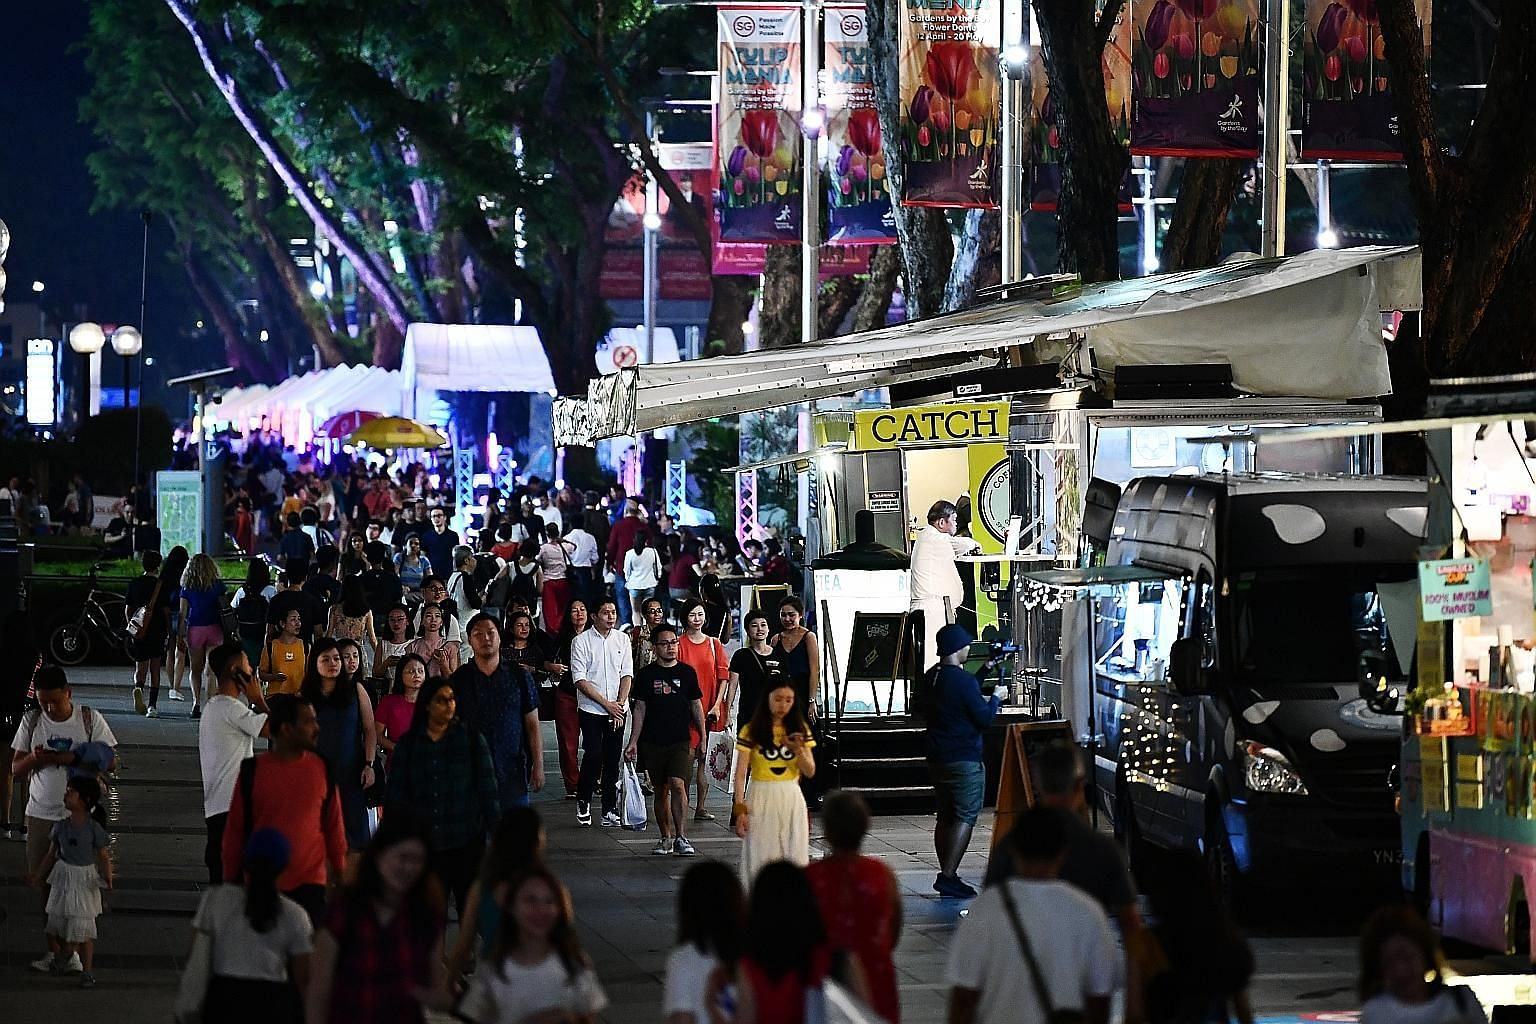 Night At Orchard is part of an eight-month-long pilot to revitalise the iconic road and showcase fashion, arts, street food, drinks and music with a different theme each month.